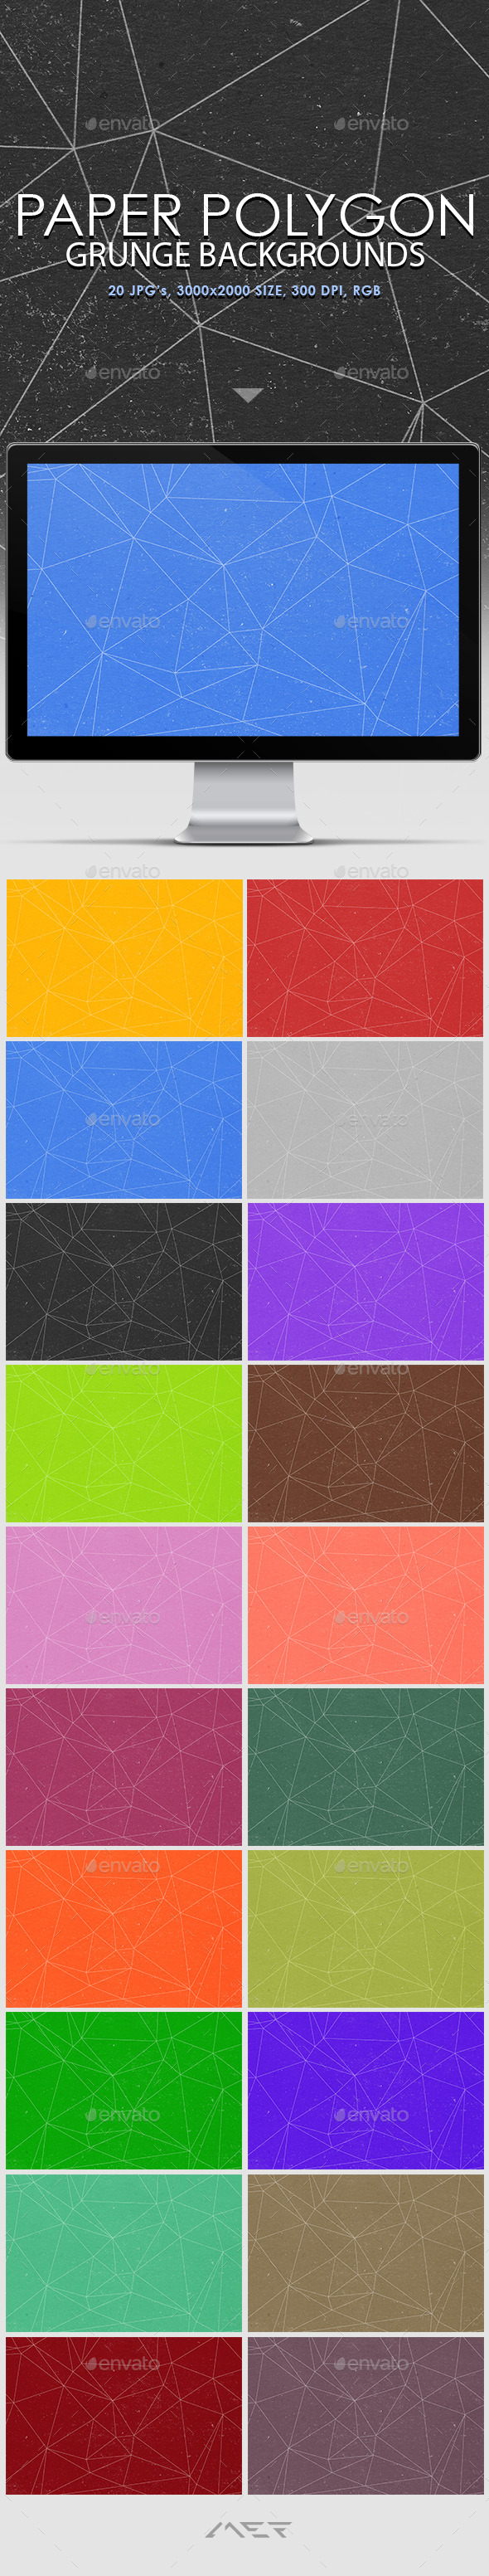 Paper Polygon Grunge Backgrounds - Abstract Backgrounds